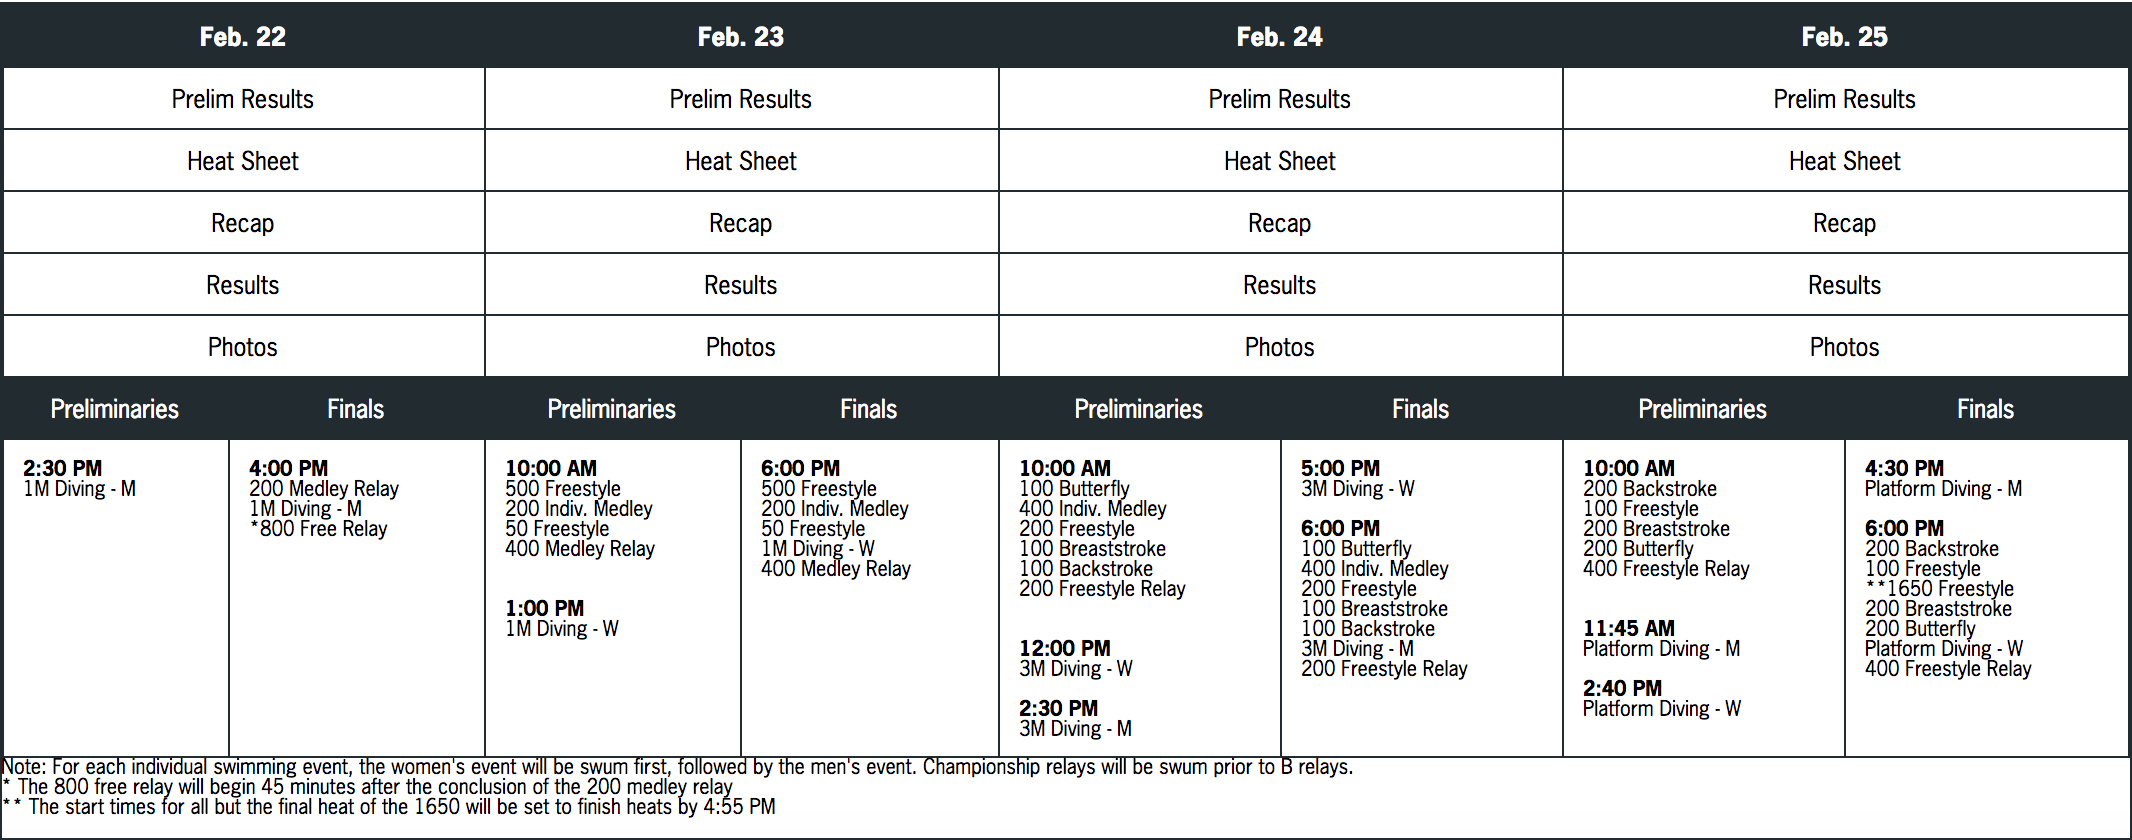 Schedule Big 12 Swimming And Diving